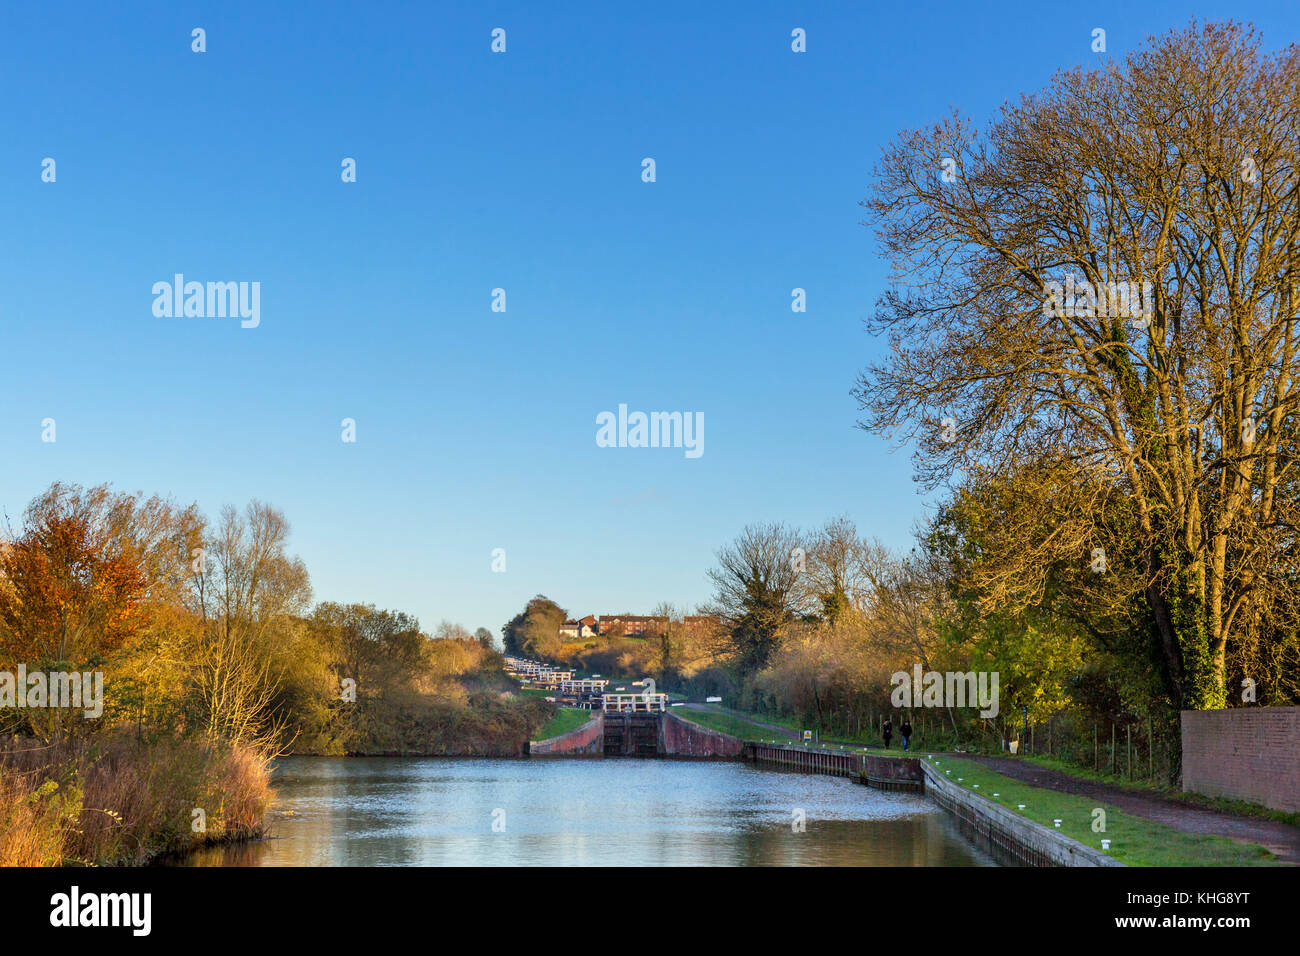 Main flight of Caen Hill Locks, Kennet and Avon Canal, Devizes, Wiltshire, England, UK - Stock Image